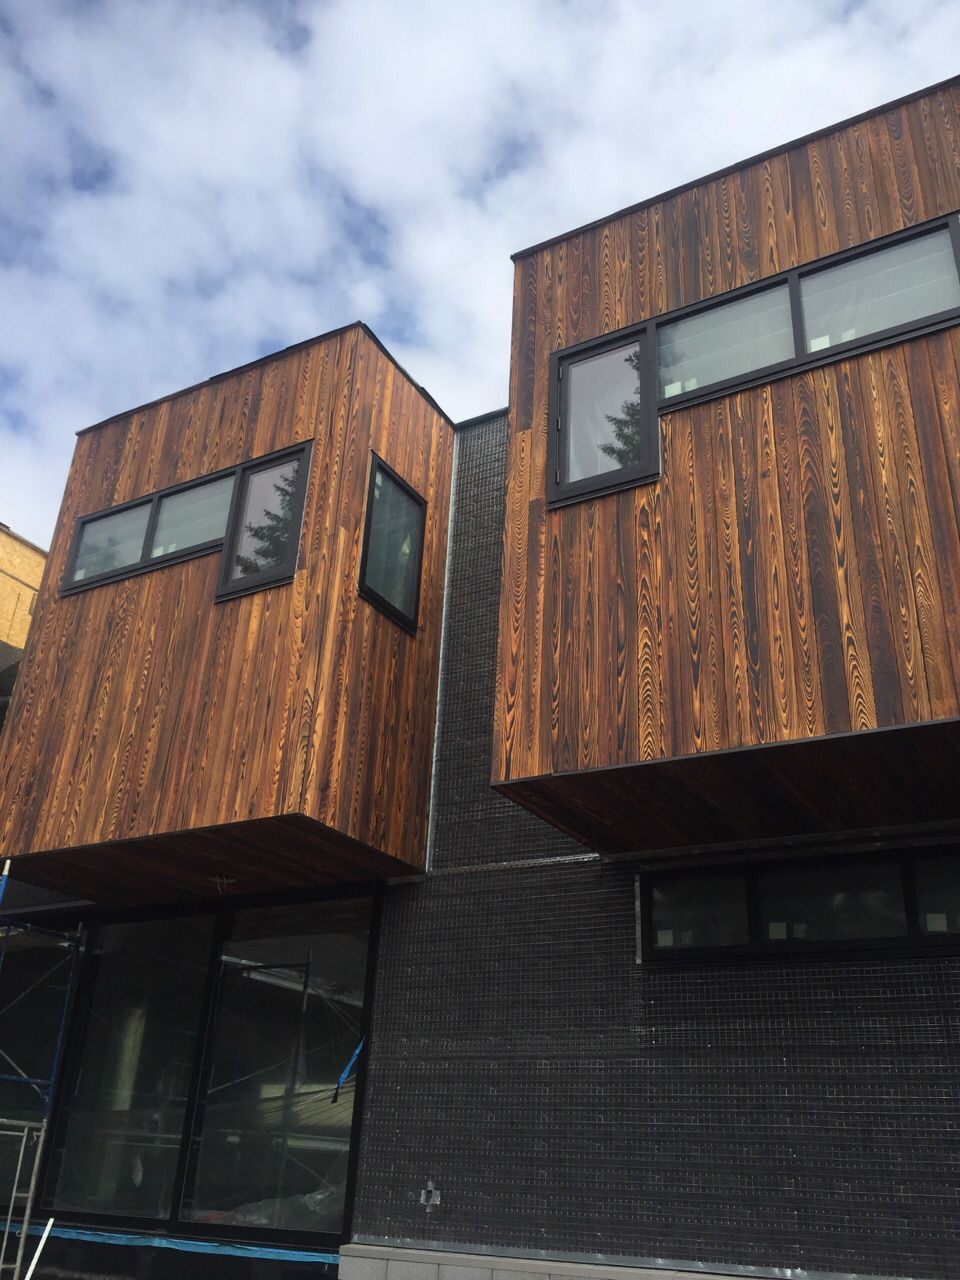 TORA shou sugi ban charred wood exterior siding by reSAWN TIMBER co ...